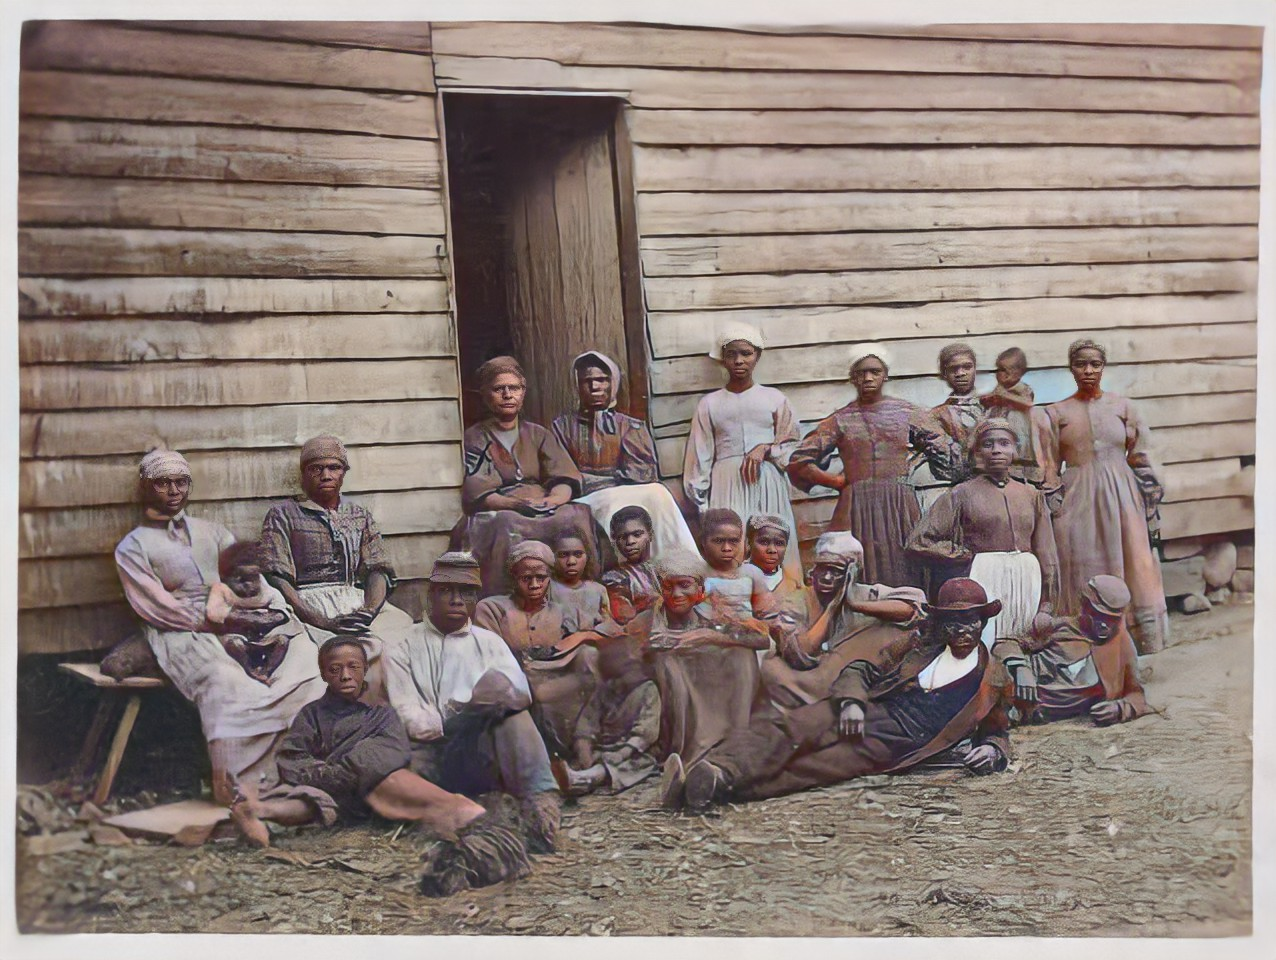 I will restore and colorize your old photos